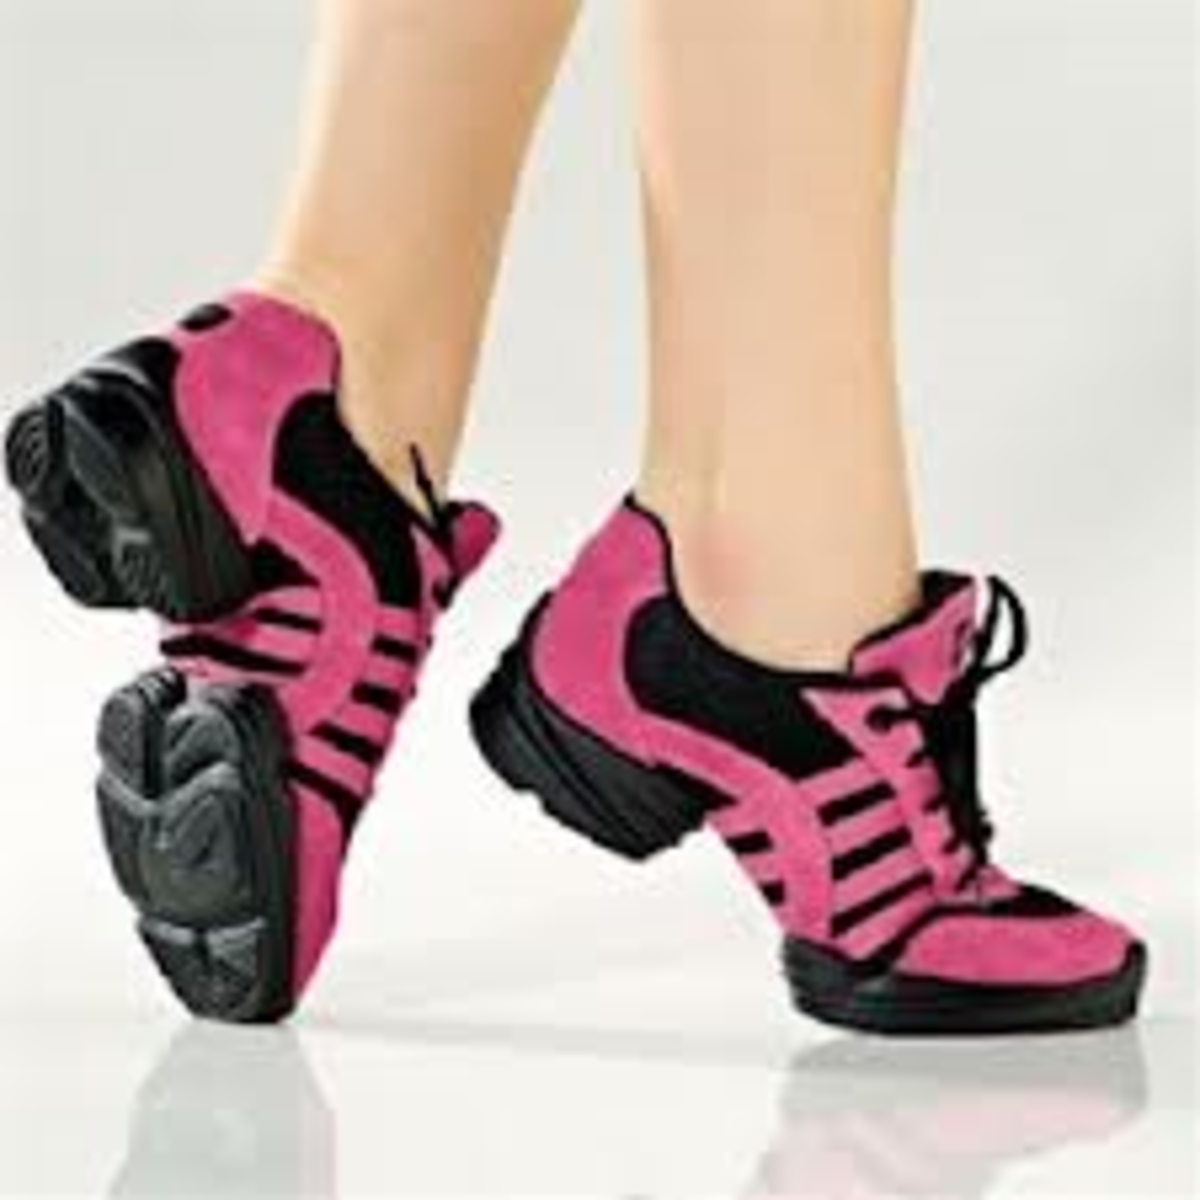 The best zumba dance shoes reviewed